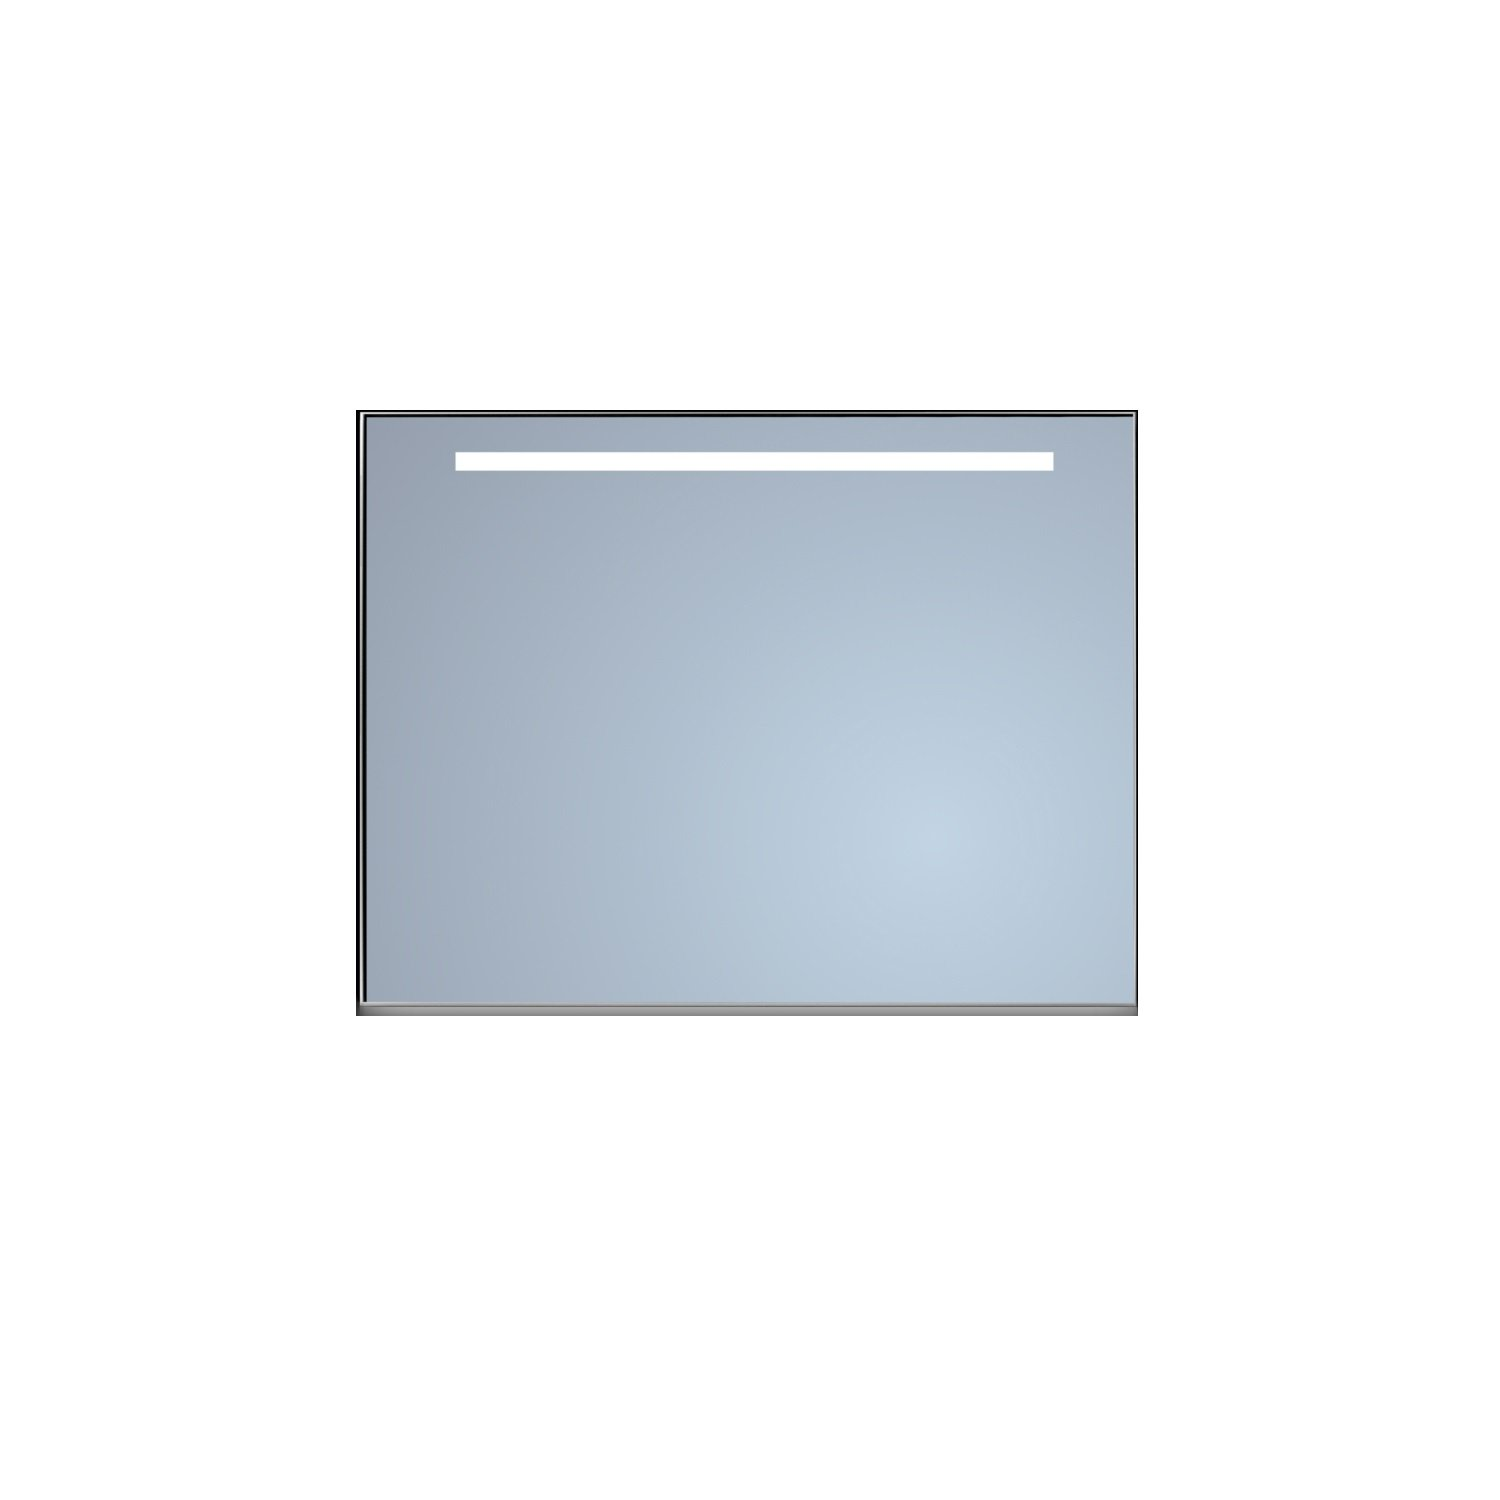 Badkamerspiegel Sanicare Q-Mirrors Ambiance en 'Cold White' LED-verlichting 70x120x3,5 Alu Omlijsting